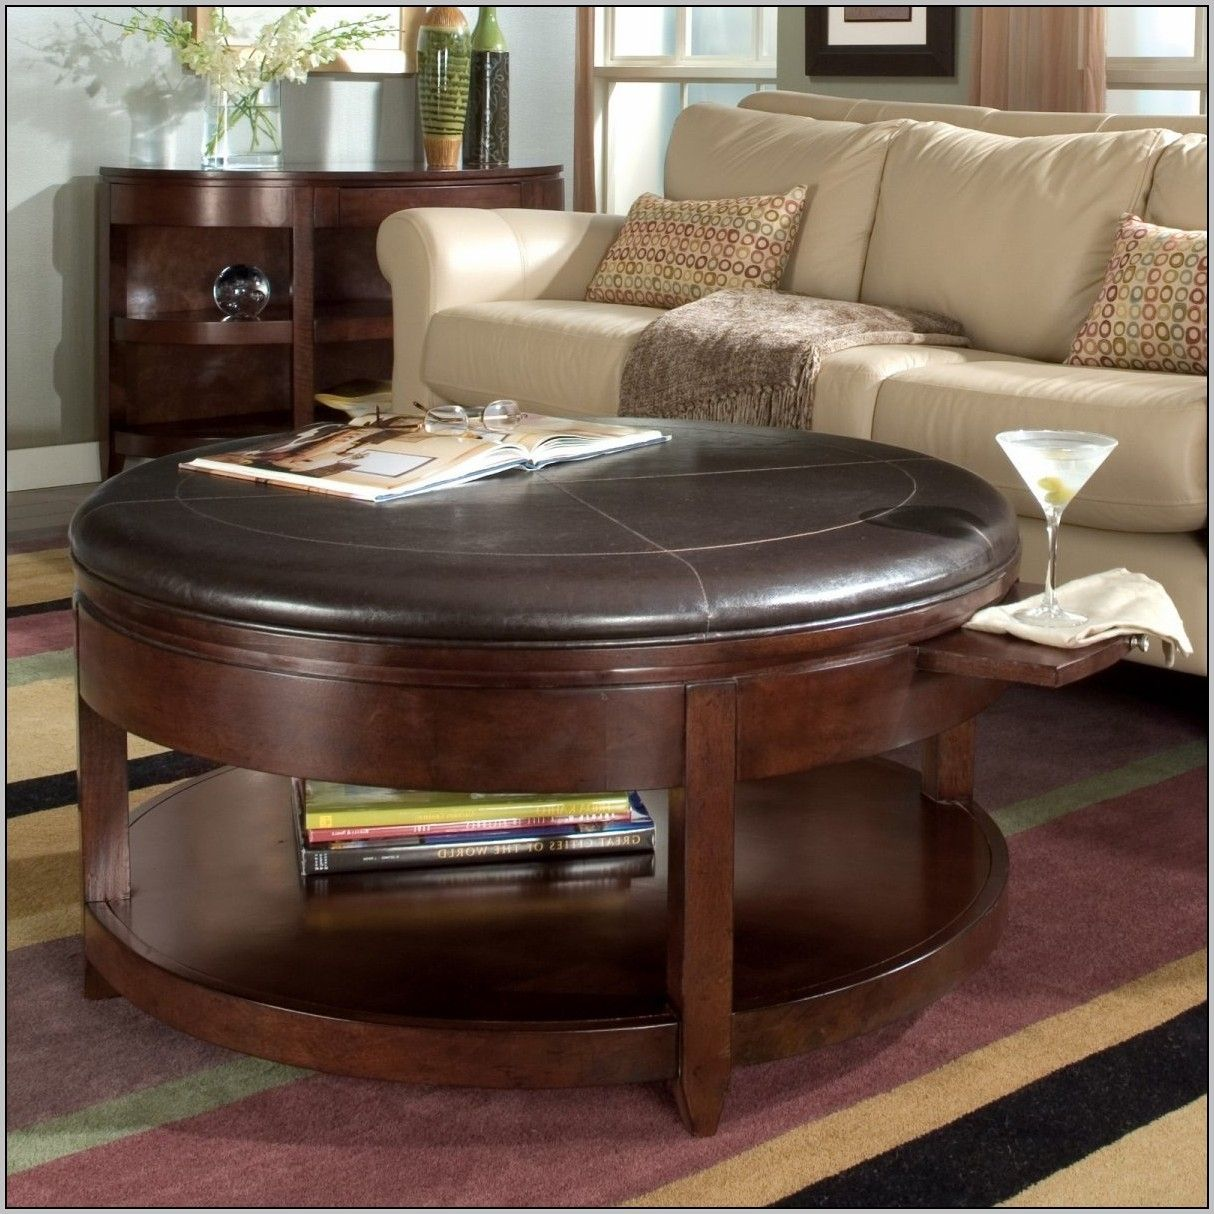 Round Coffee Table With Storage Cubes